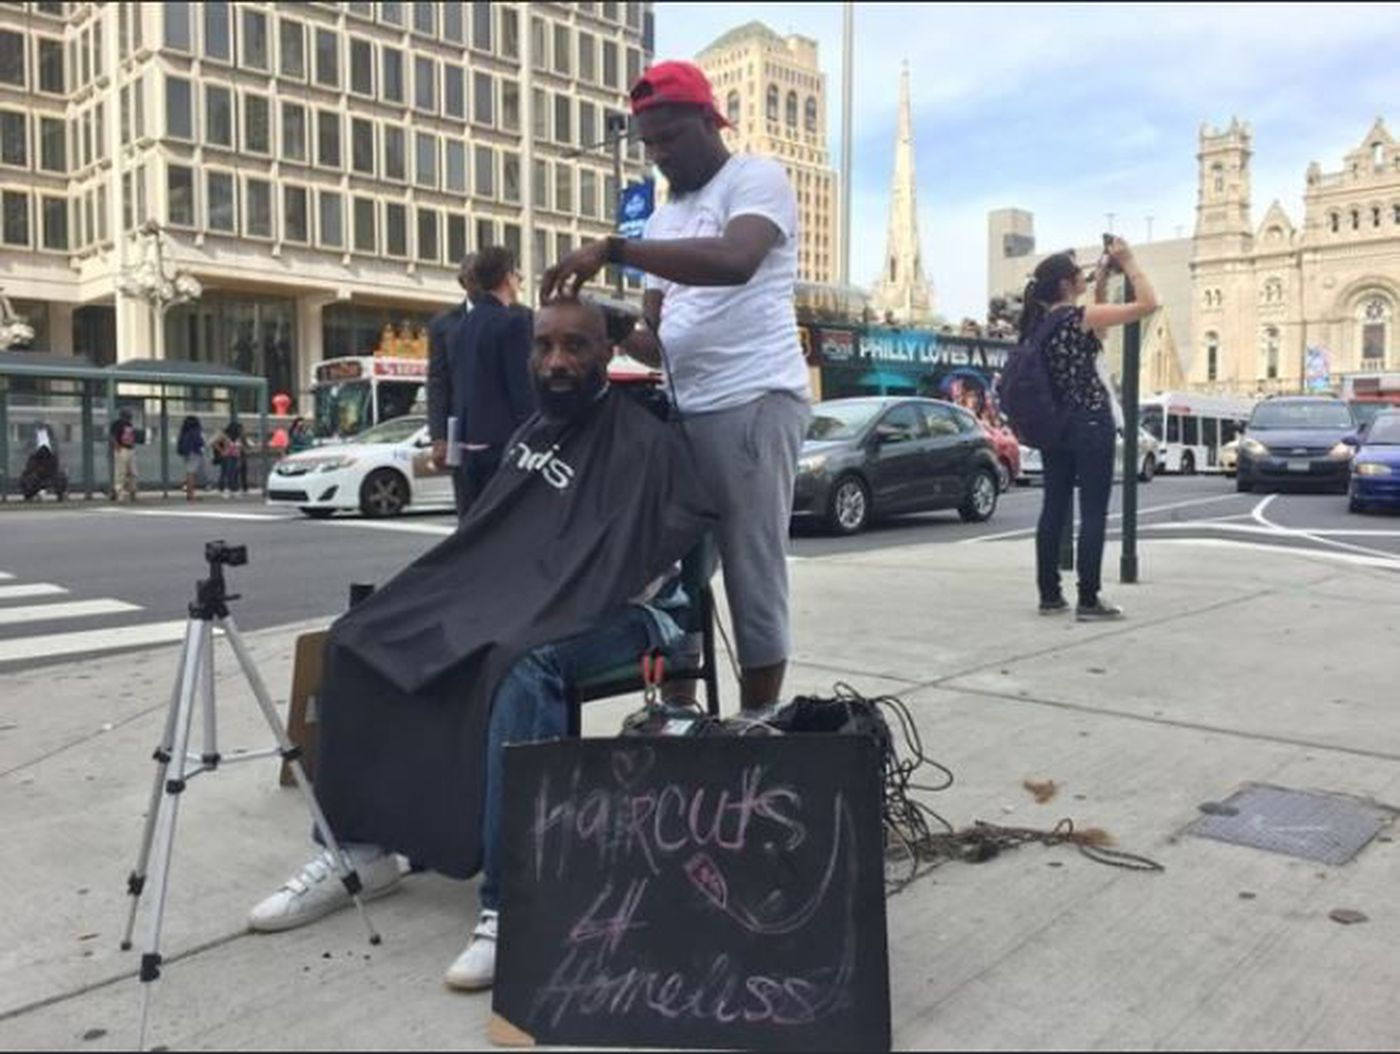 Haircuts 11 Homeless barber opens shop gifted to him by a stranger